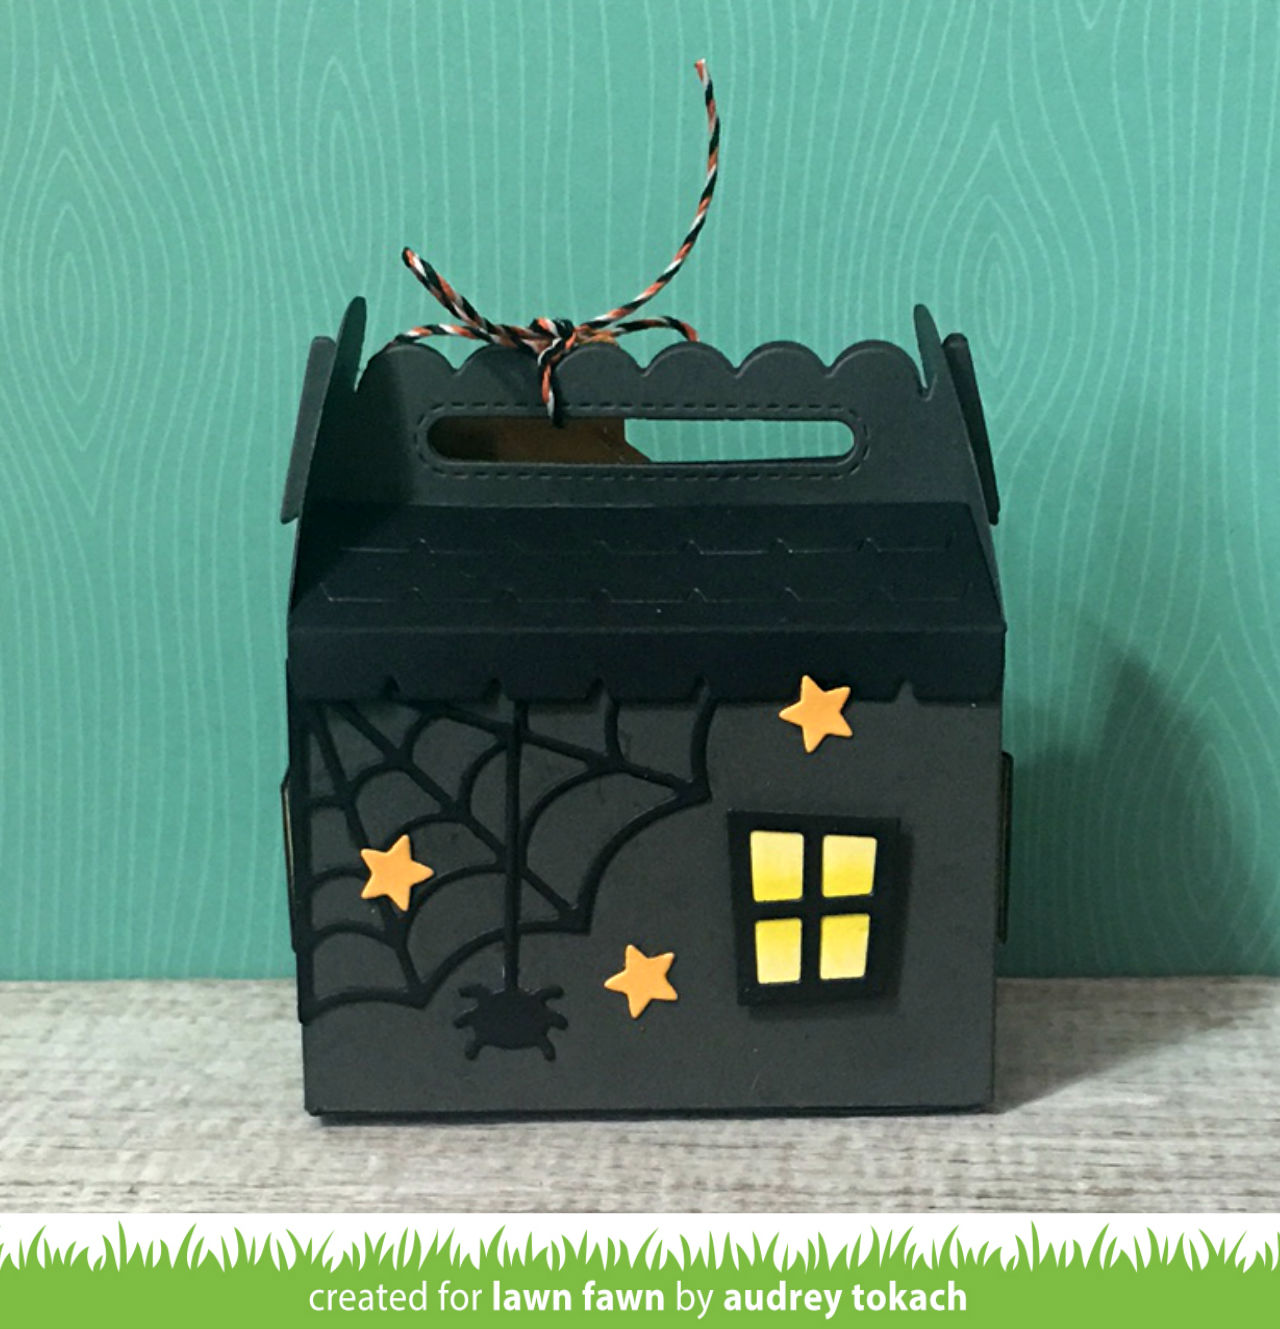 Meaning Of Shut The Front Door: Lawn Fawn Intro: Scalloped Treat Box Haunted House Add-On